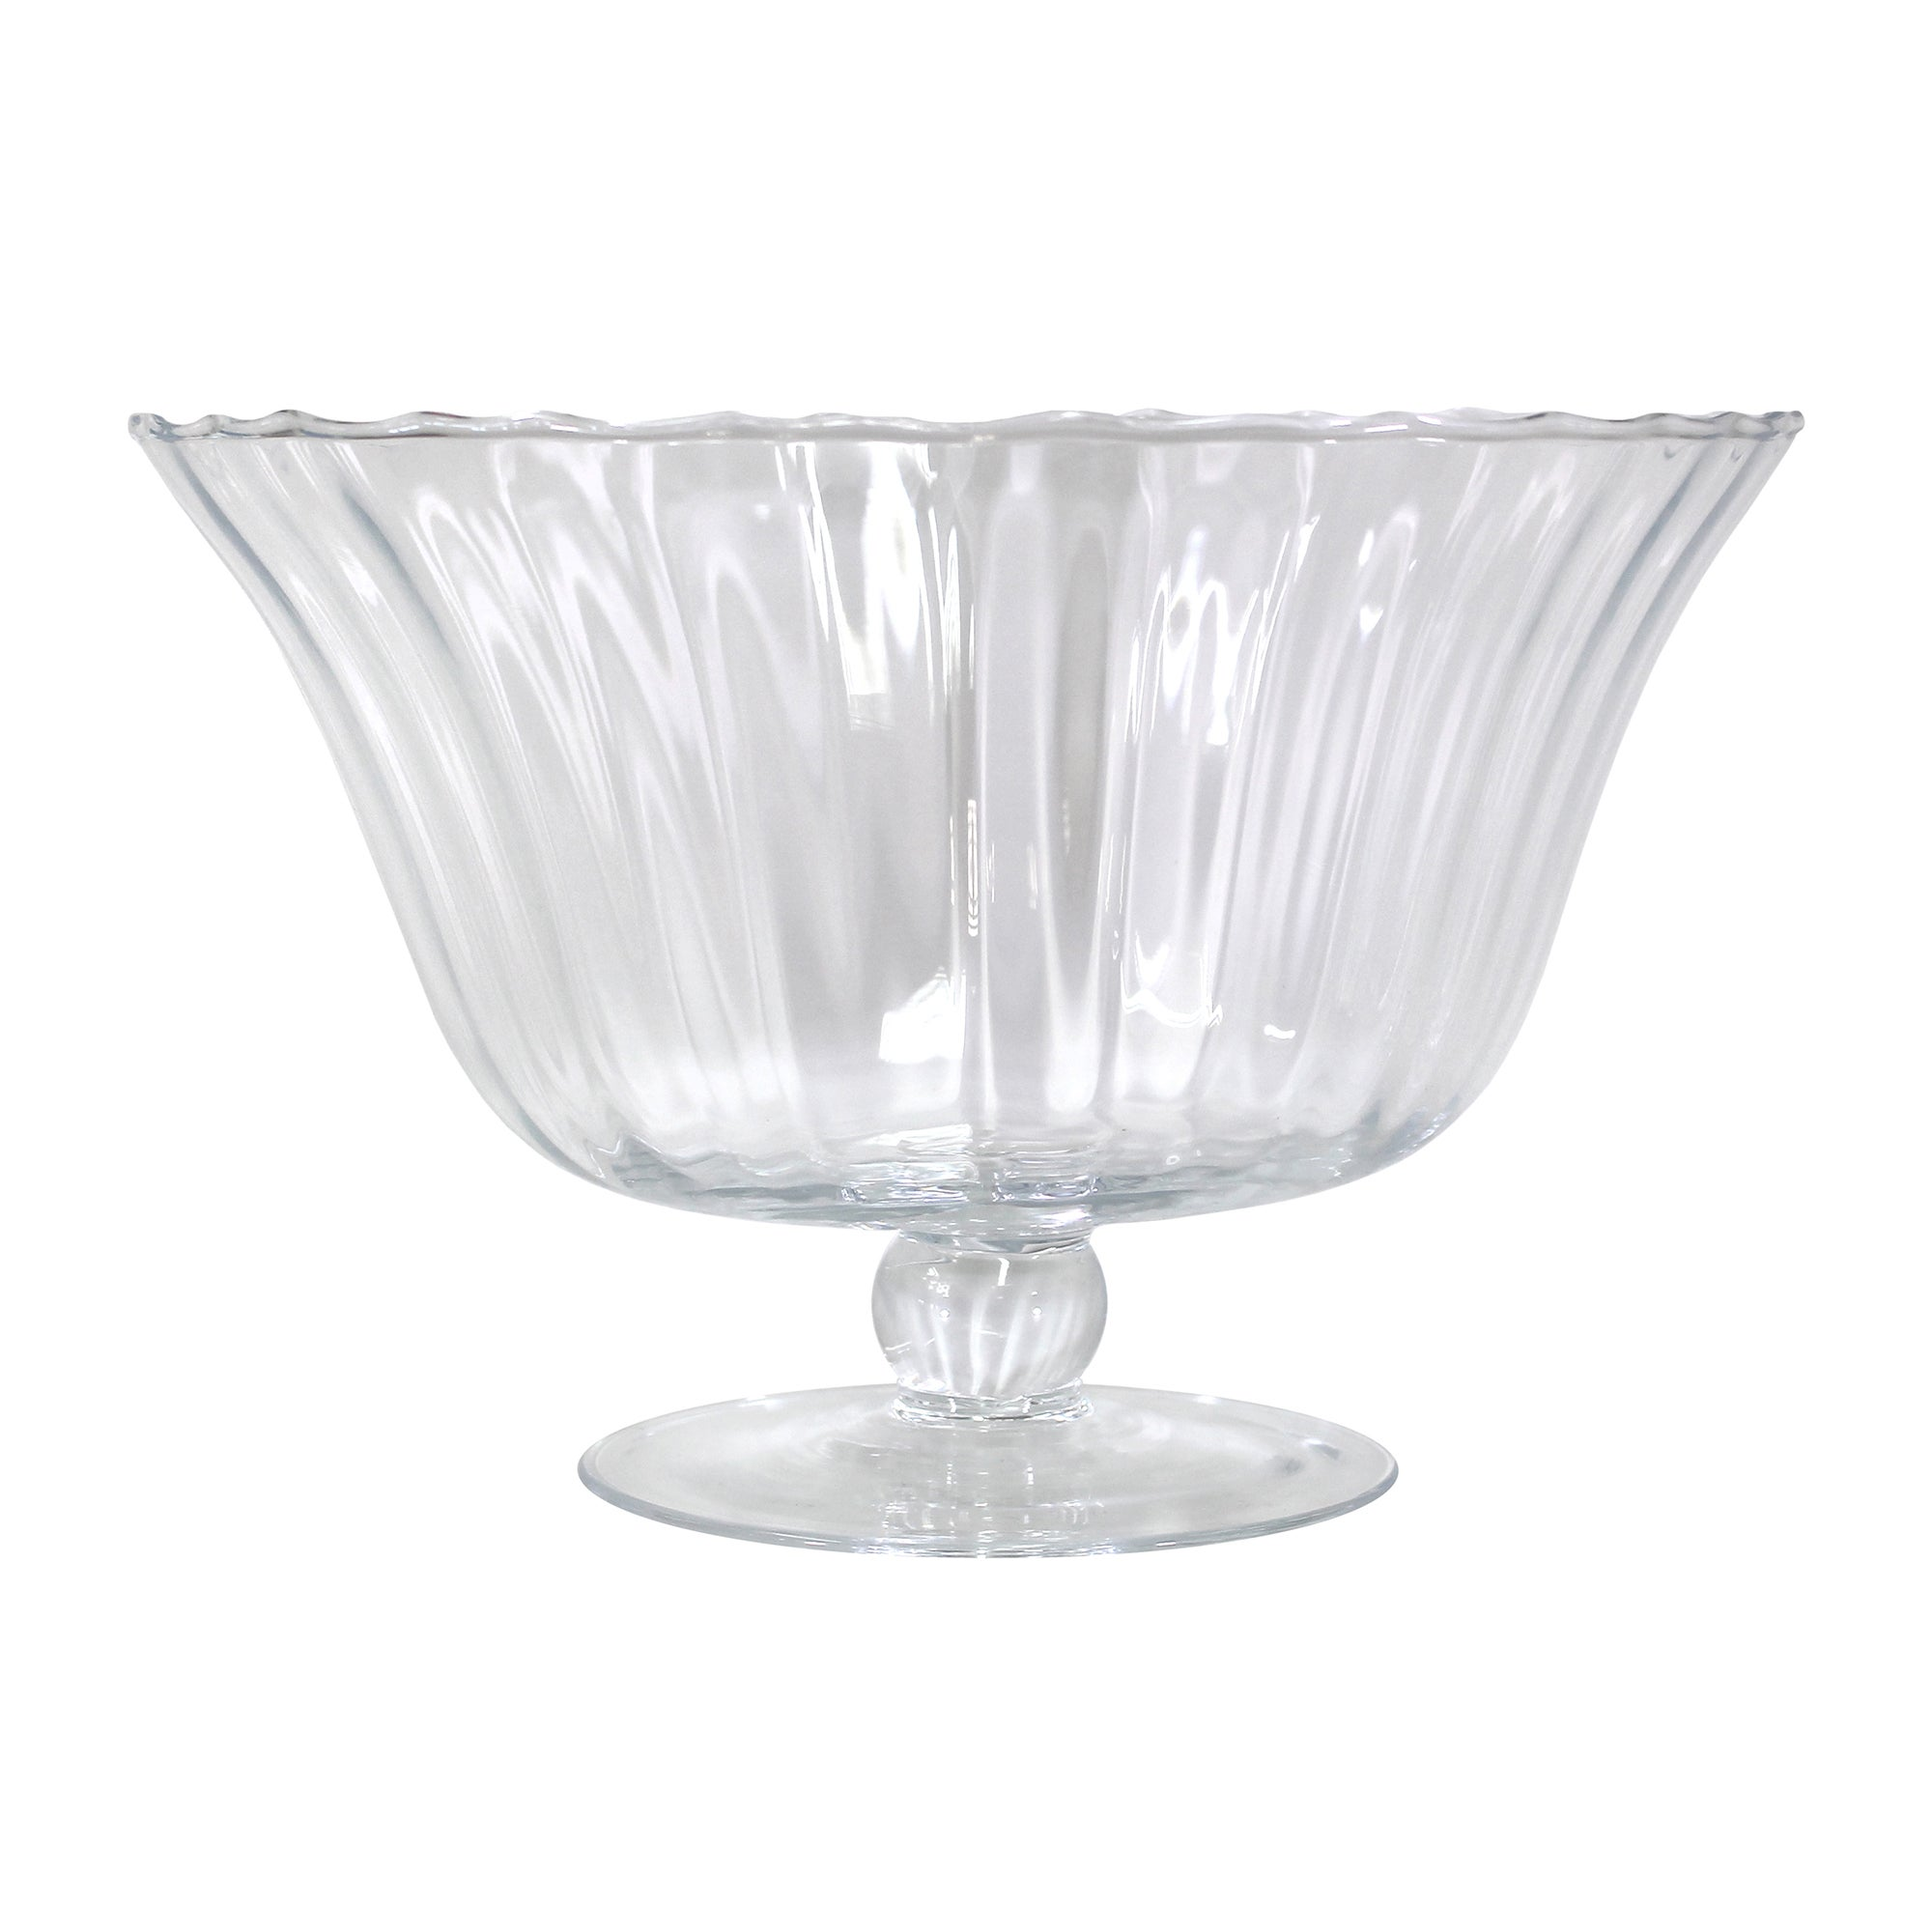 Photo of Dorma optic bowl clear